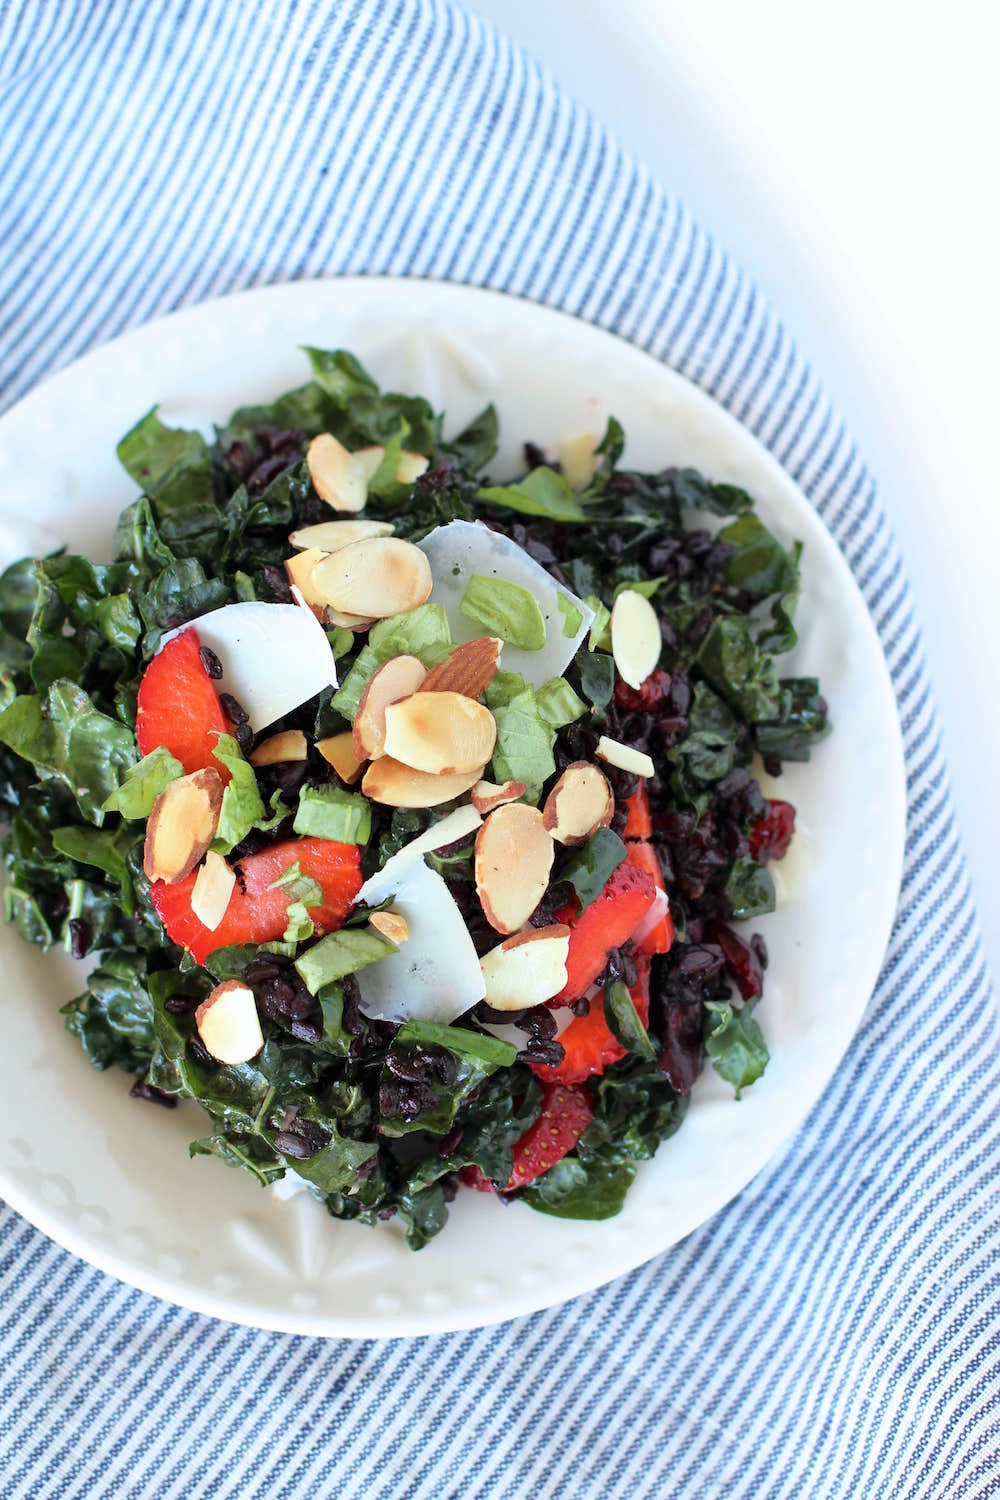 Wild Kale Salad Recipe | Kale salad with strawberries, balsamic feta, basil | Nourishing Wild